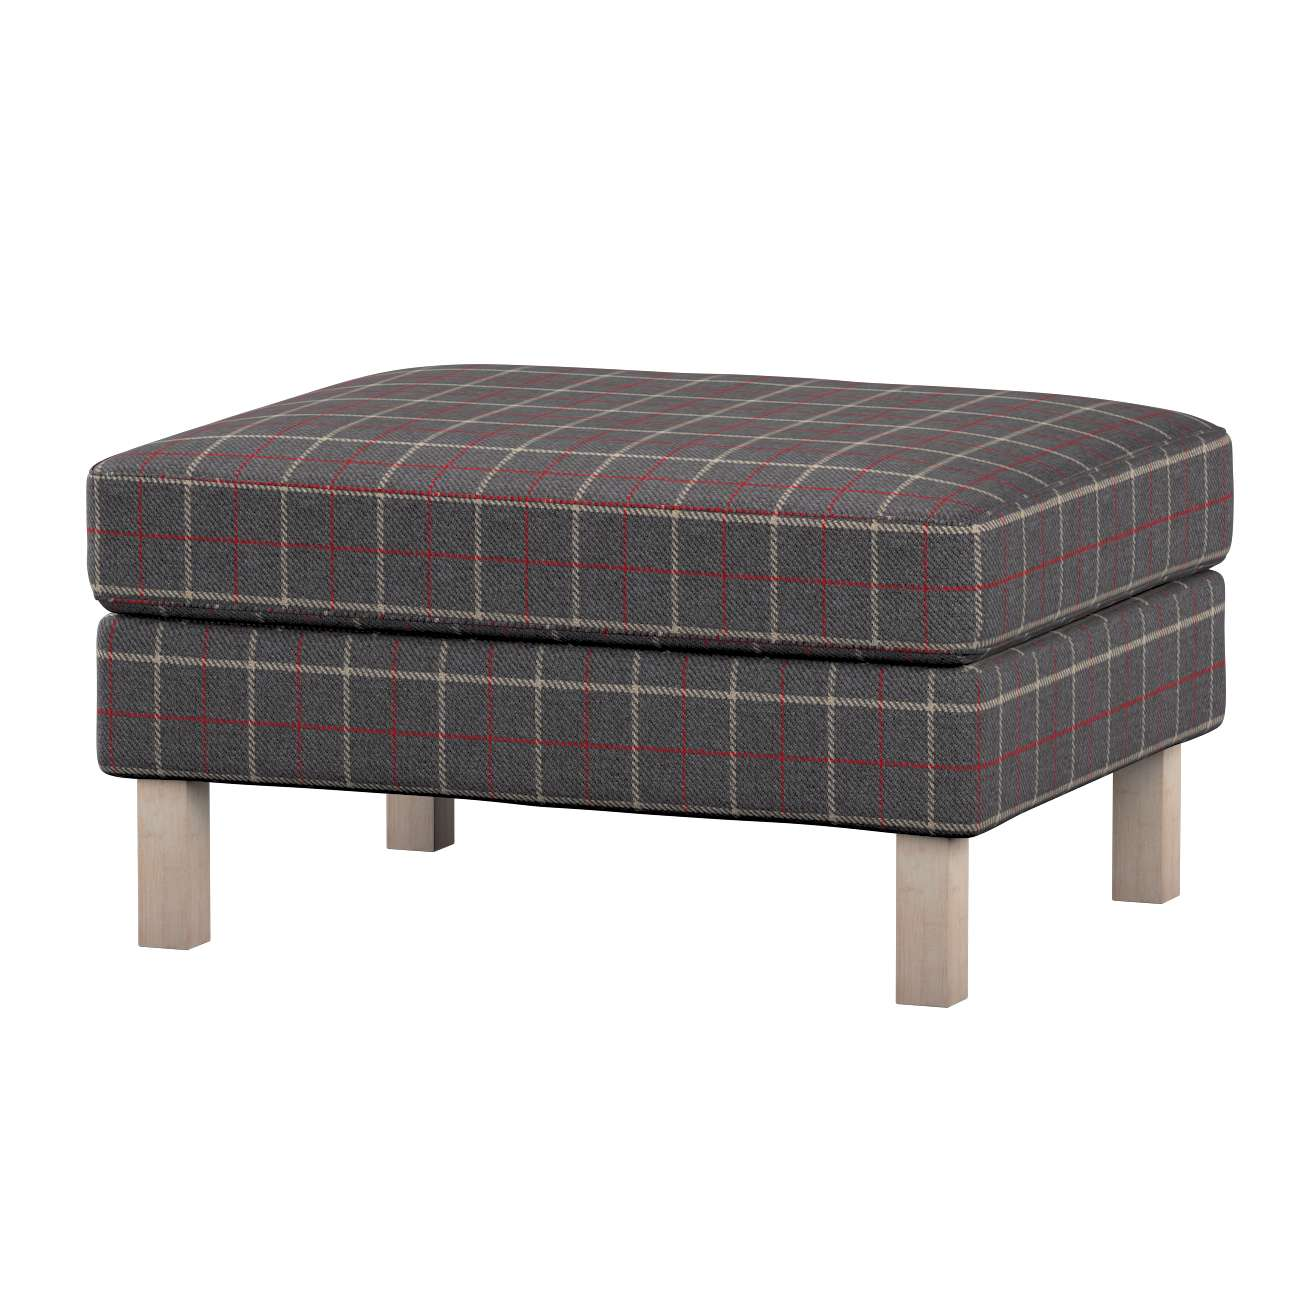 Karlstad footstool cover Karlstad footstool cover in collection Edinburgh, fabric: 703-15